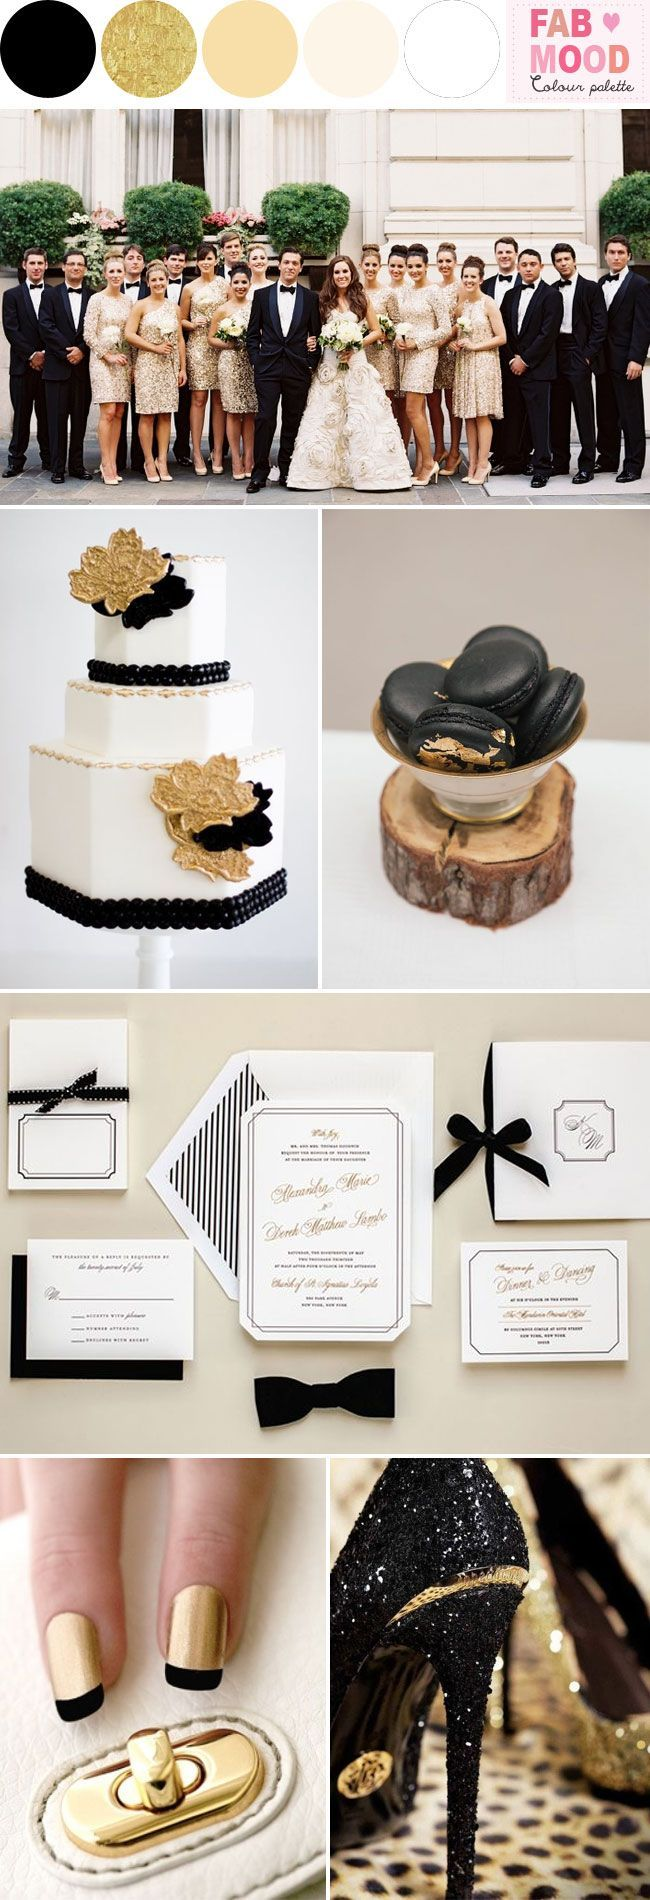 38 best New Year Wedding Ideas images on Pinterest | New years eve ...